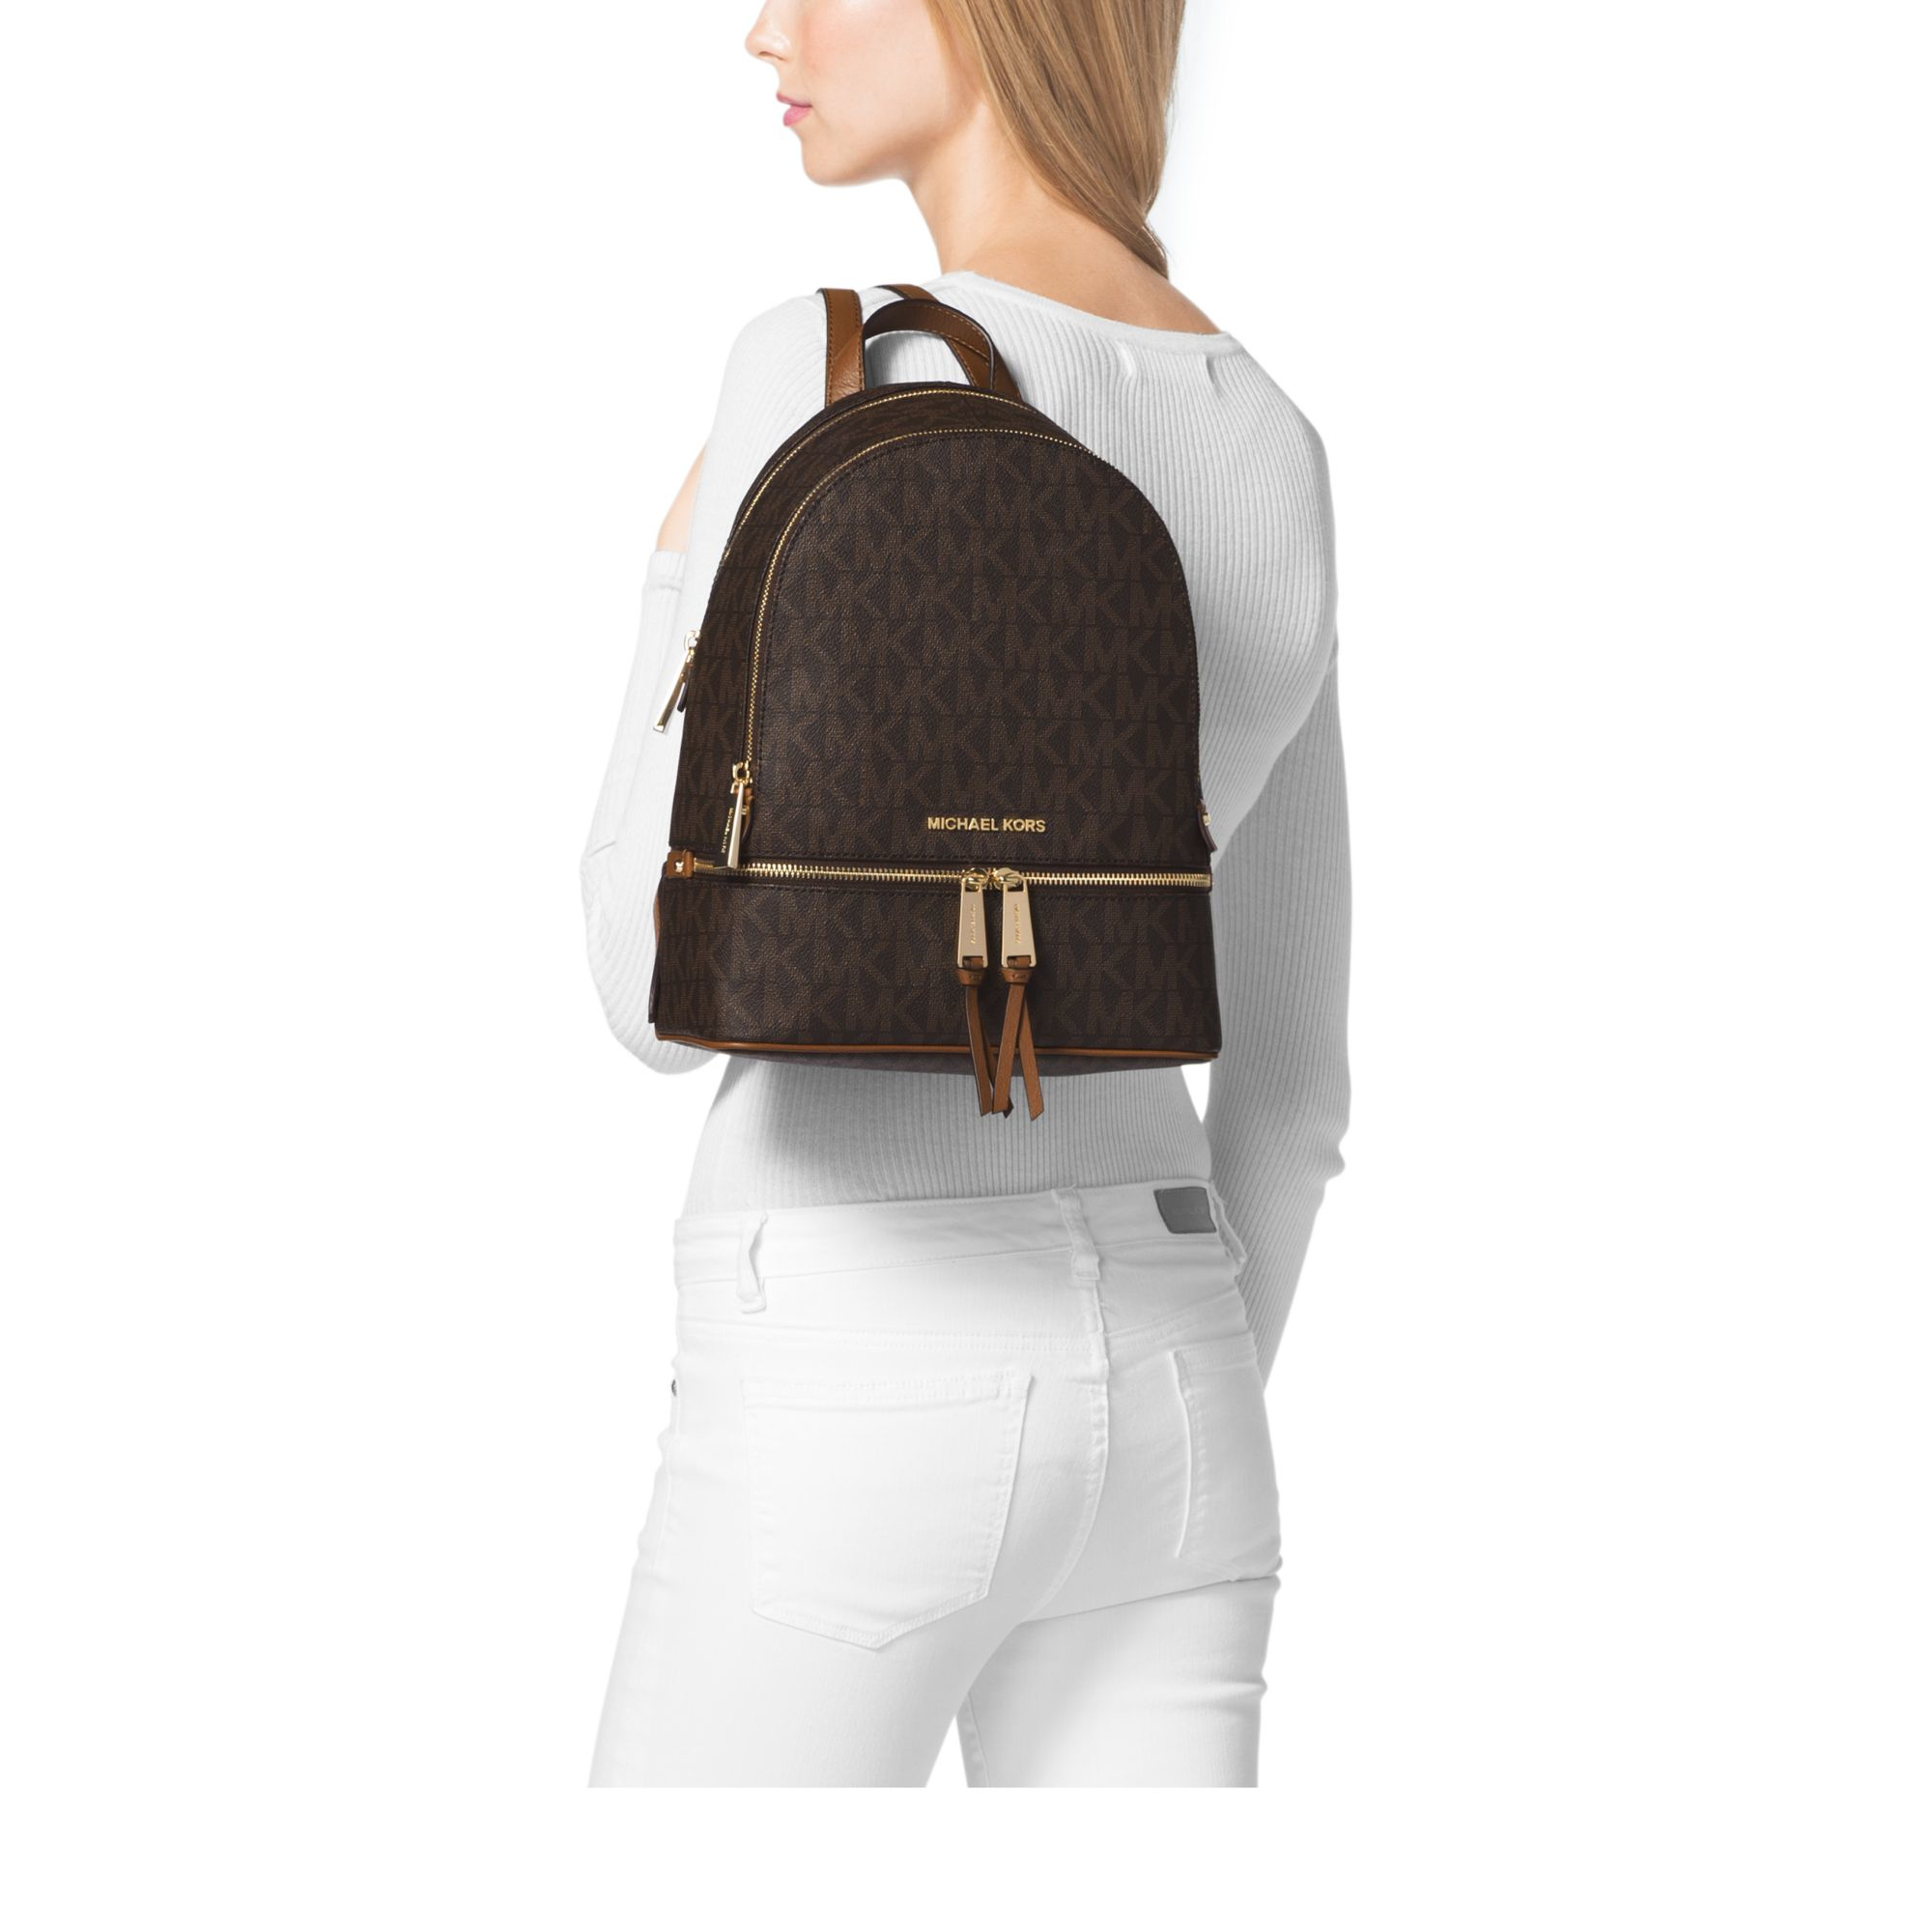 Reduced Mk Extra Small Backpack 91c96 8511d